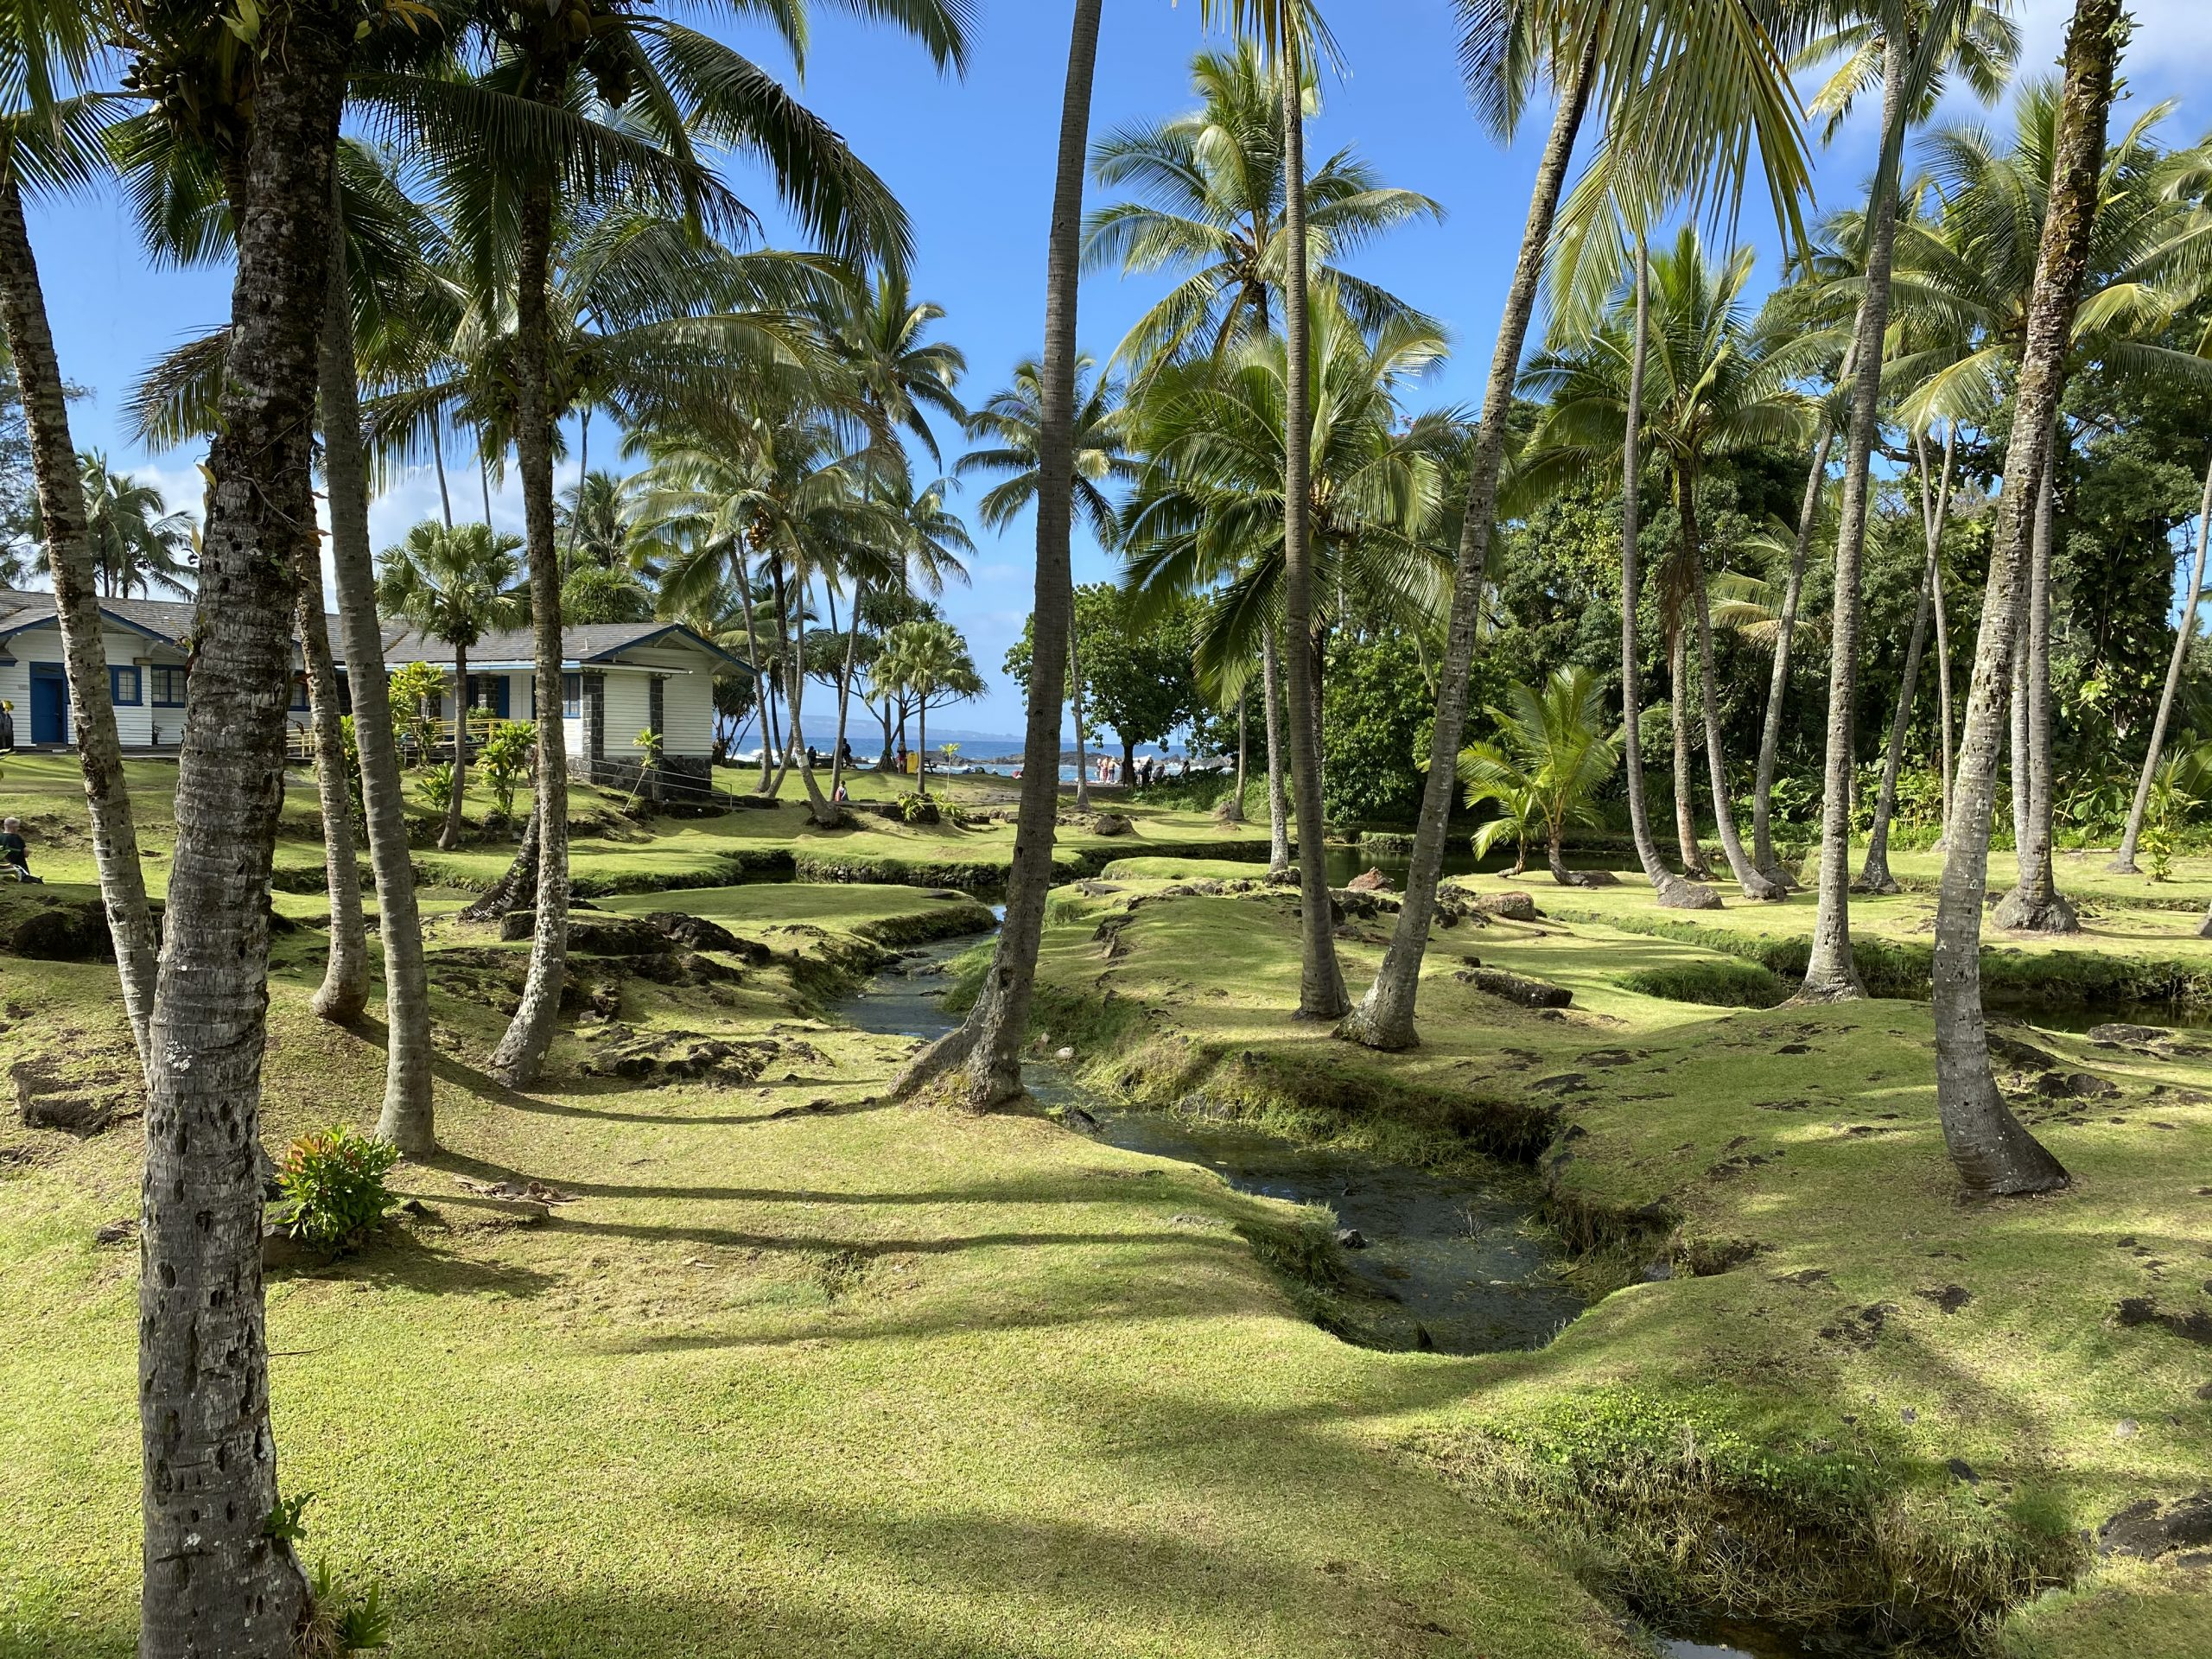 Coconut grove and stream with green grassy mounds near Richardson Beach Park in Hilo, Hawaii